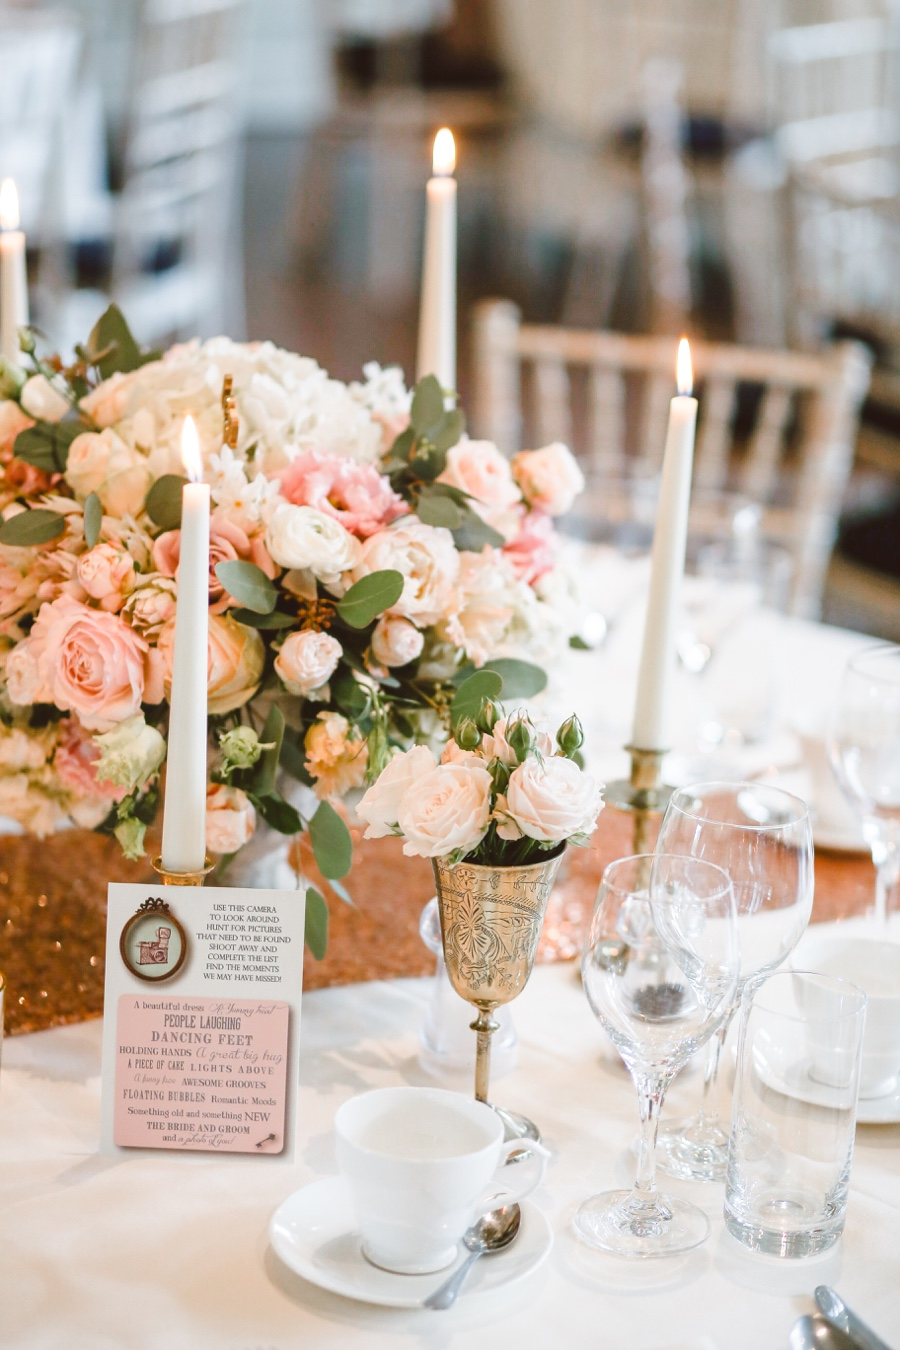 How To Decorate Your Wedding Tables For Under 10